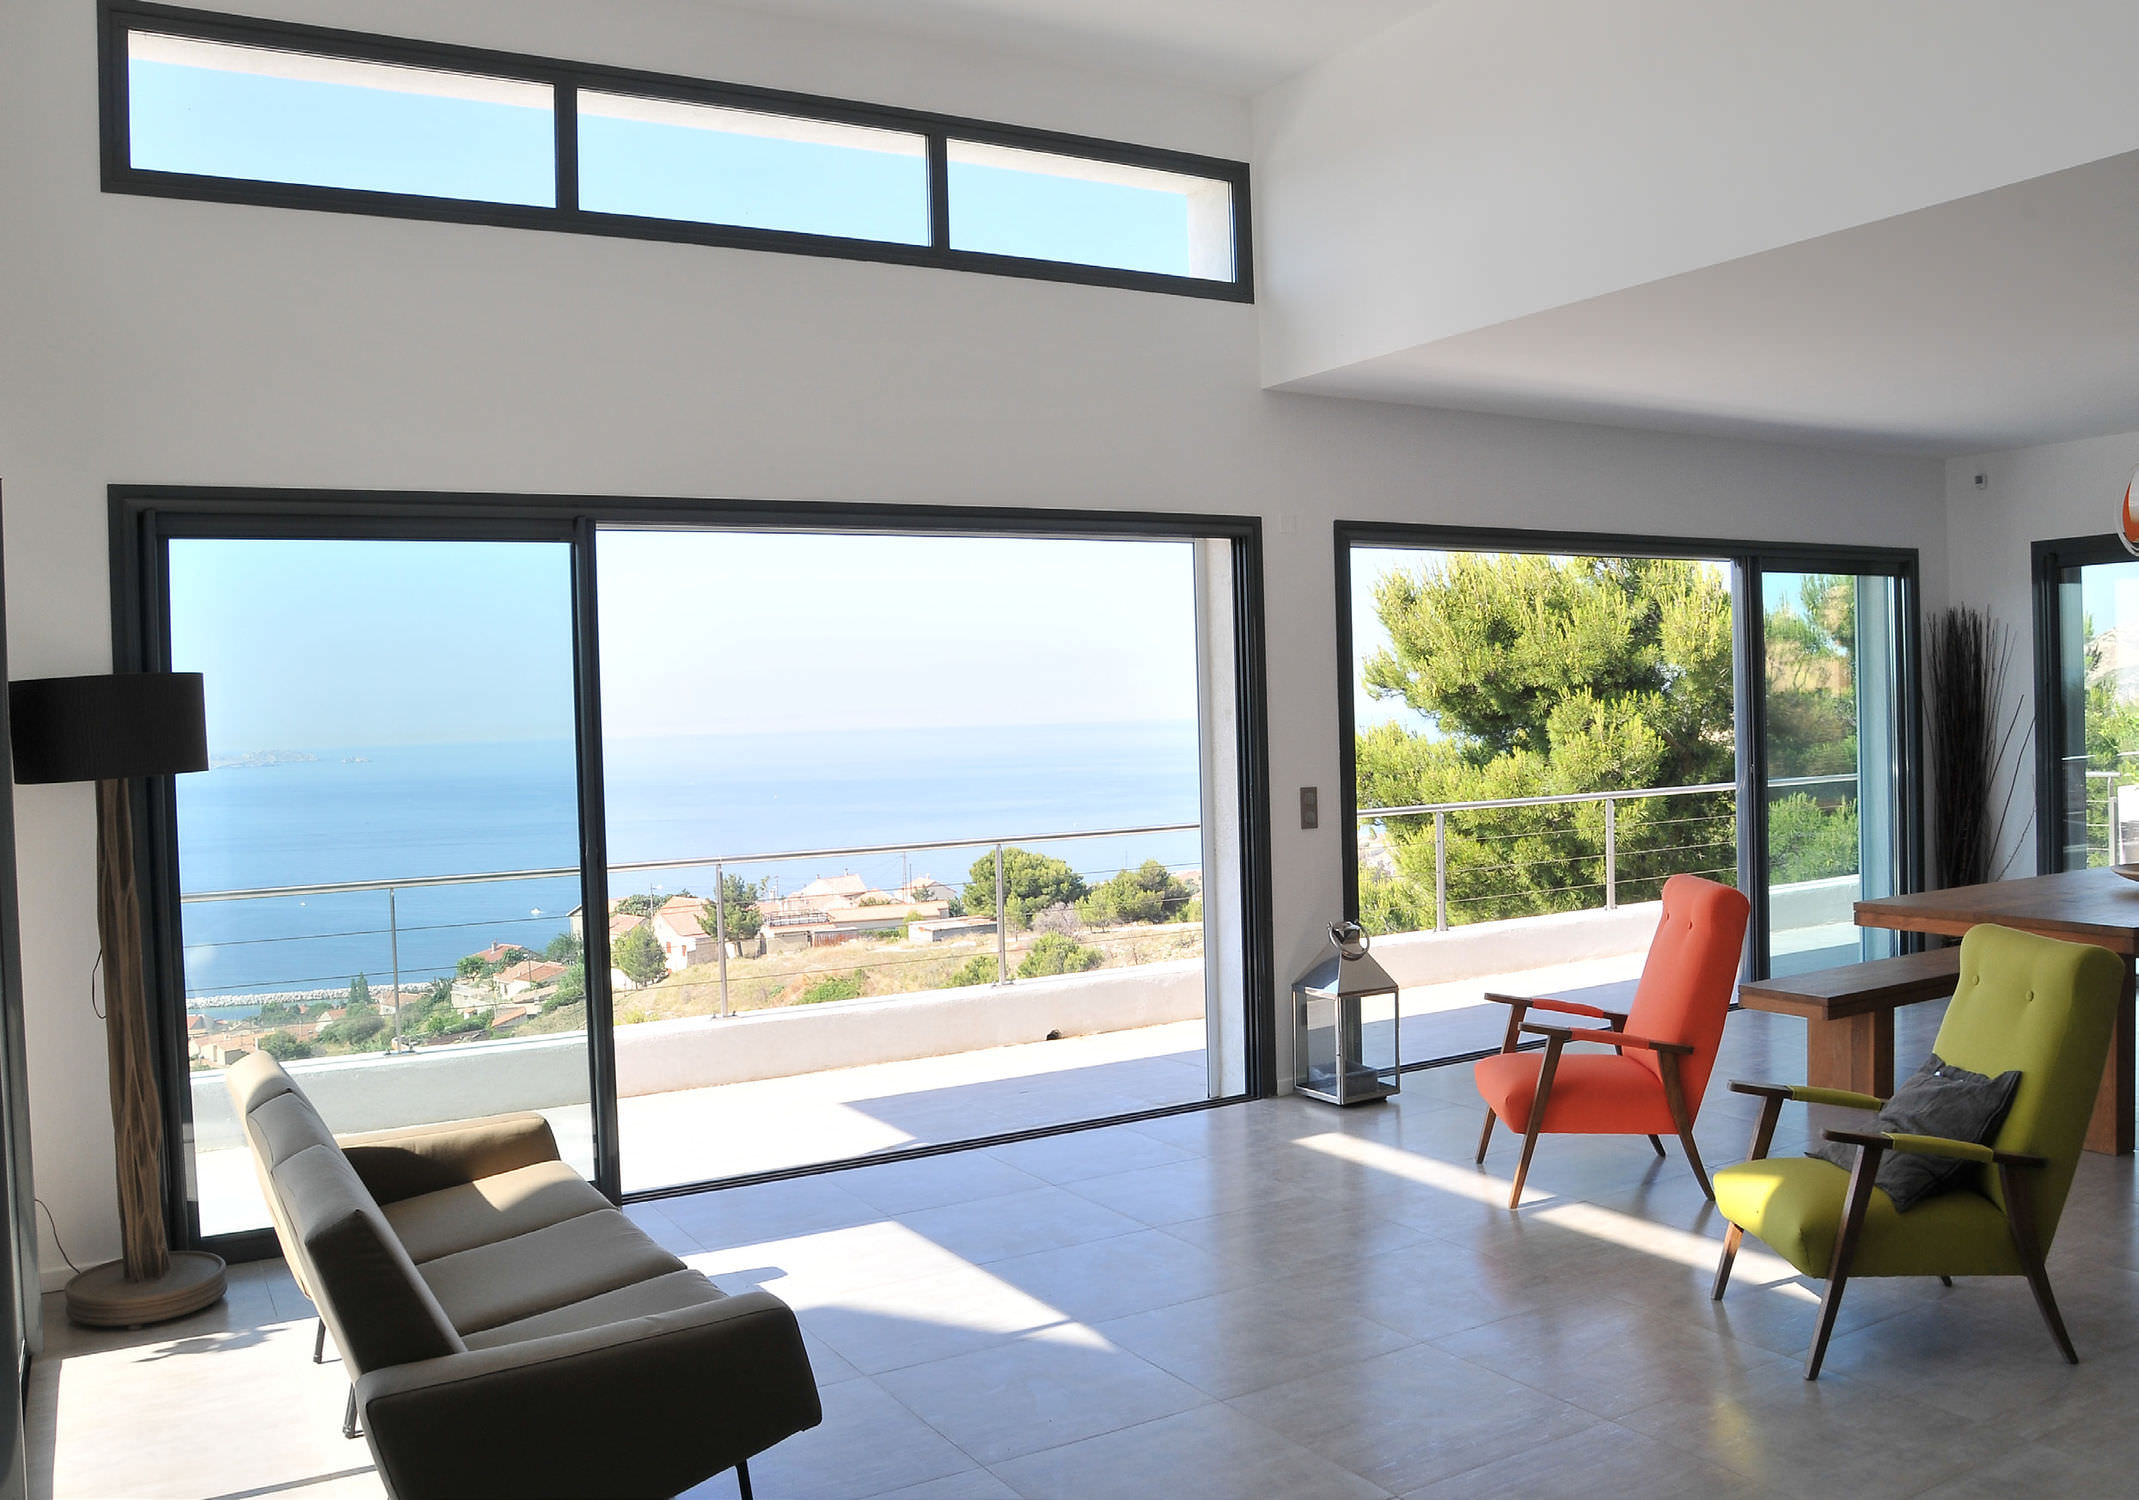 Patio glass sliding doors - Wooden Patio Glass Sliding Door System Cp 50 Reynaers Aluminium